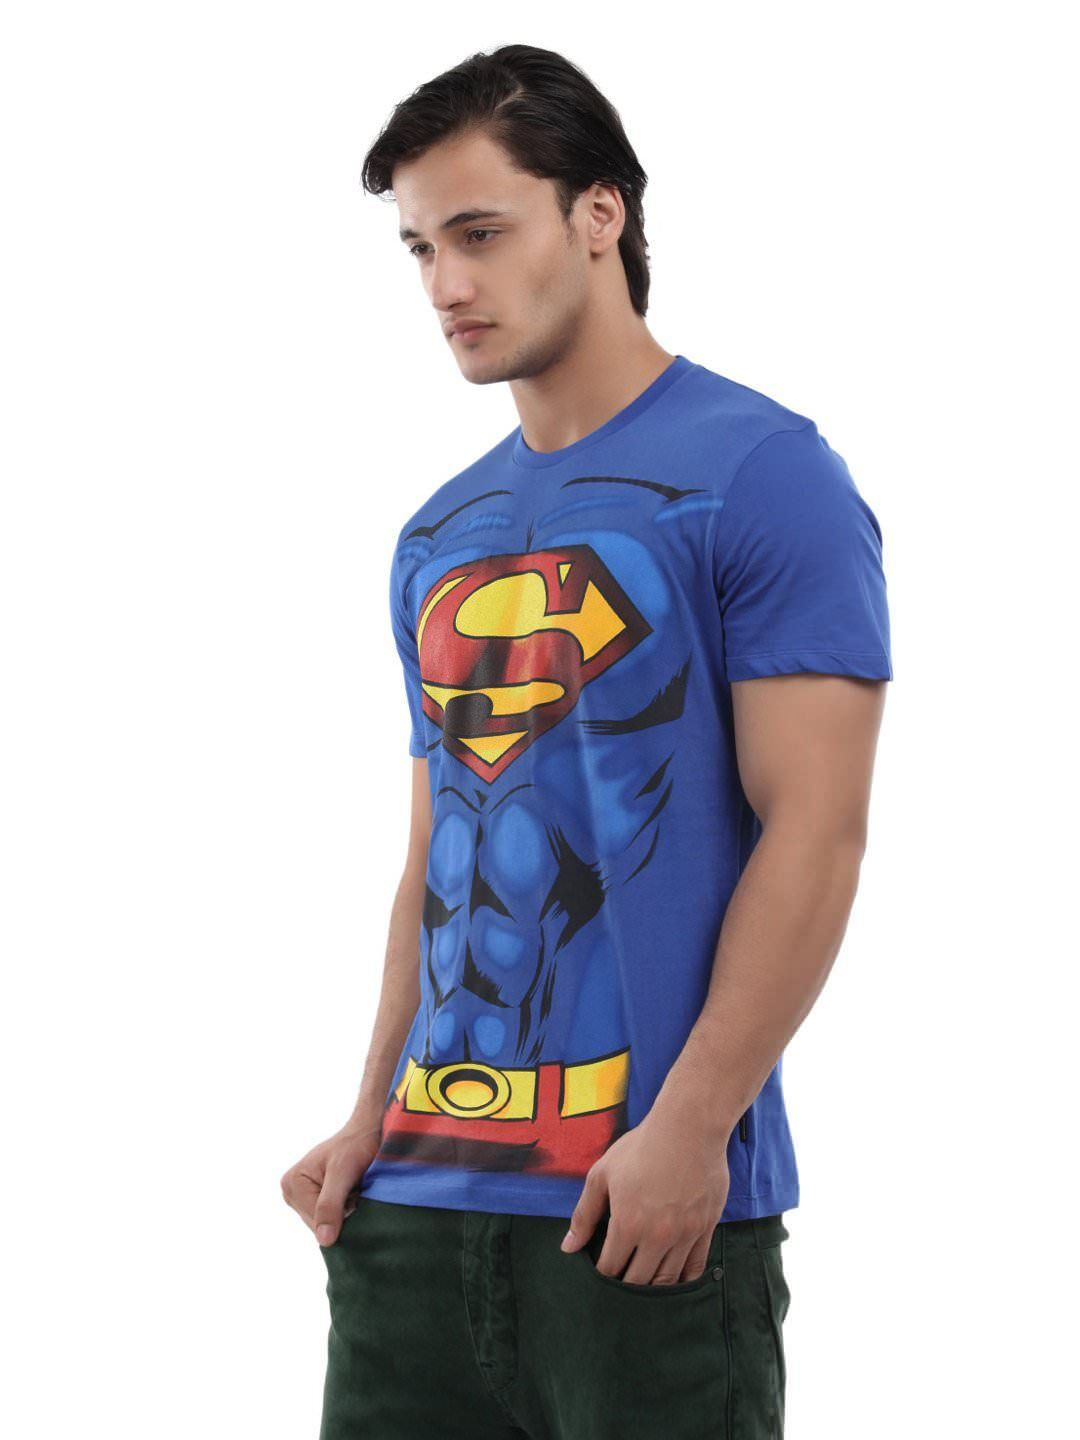 d2a05016 Superhero T Shirt In India - Cotswold Hire